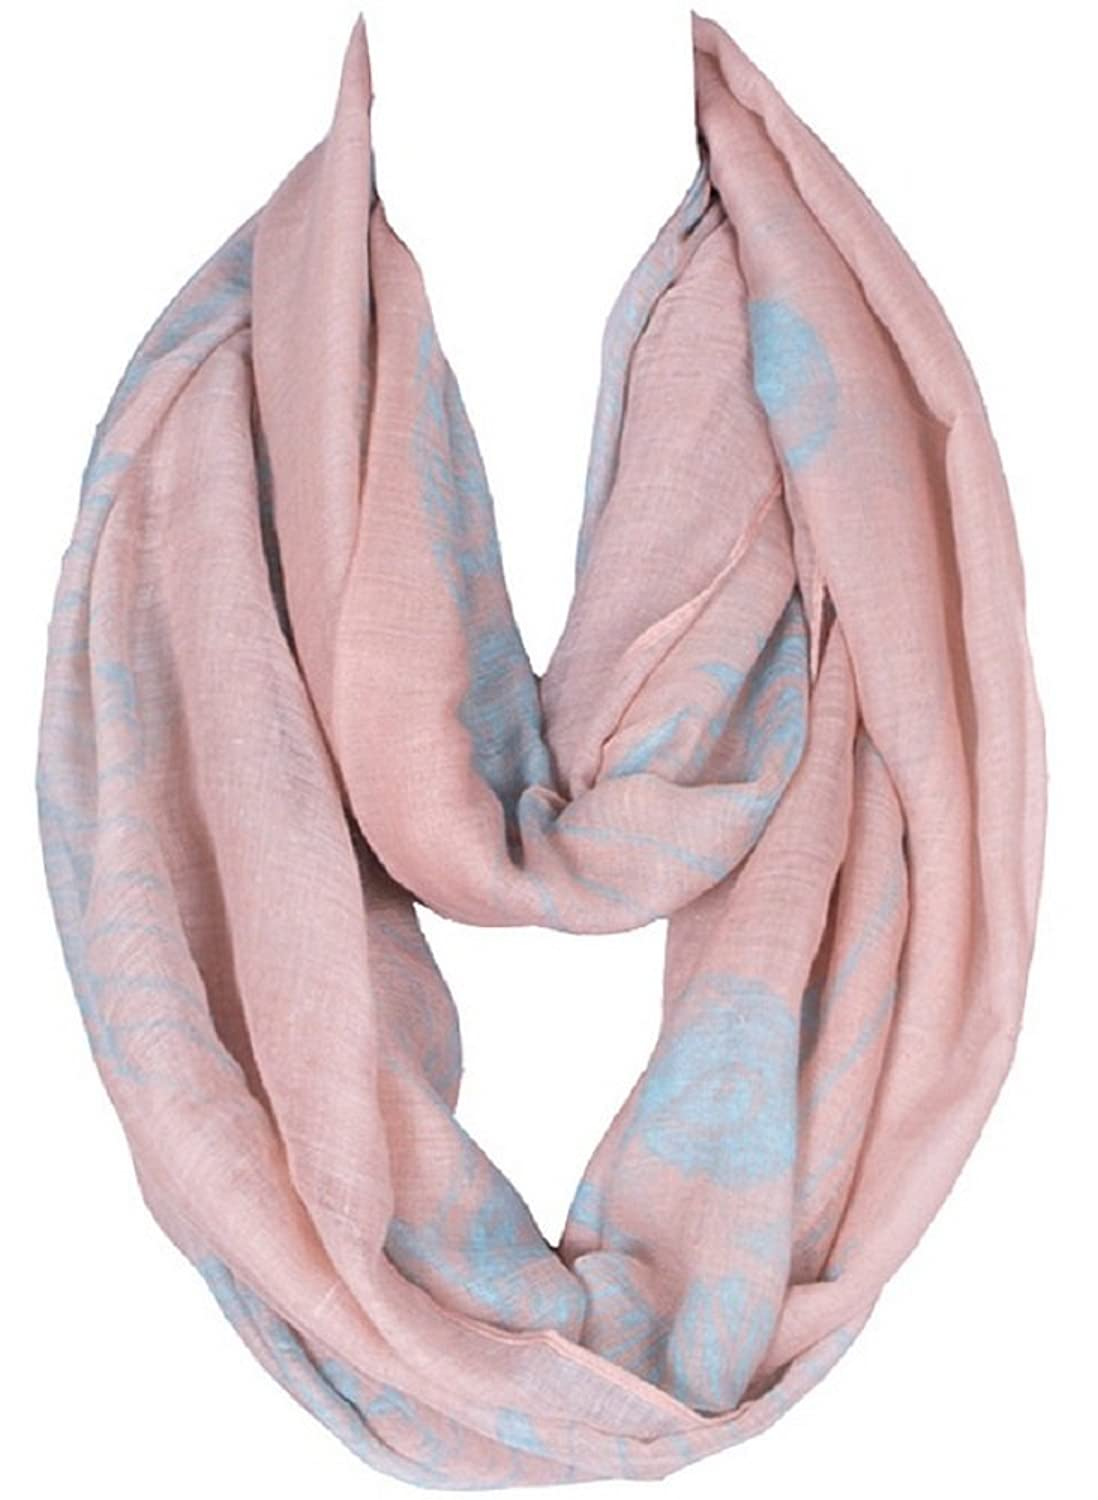 Bettyhome Women's Infinity Loop Scarf Chevron Sheer Large Birds Pattern Shawl 70.87 inch x 39.37 inch